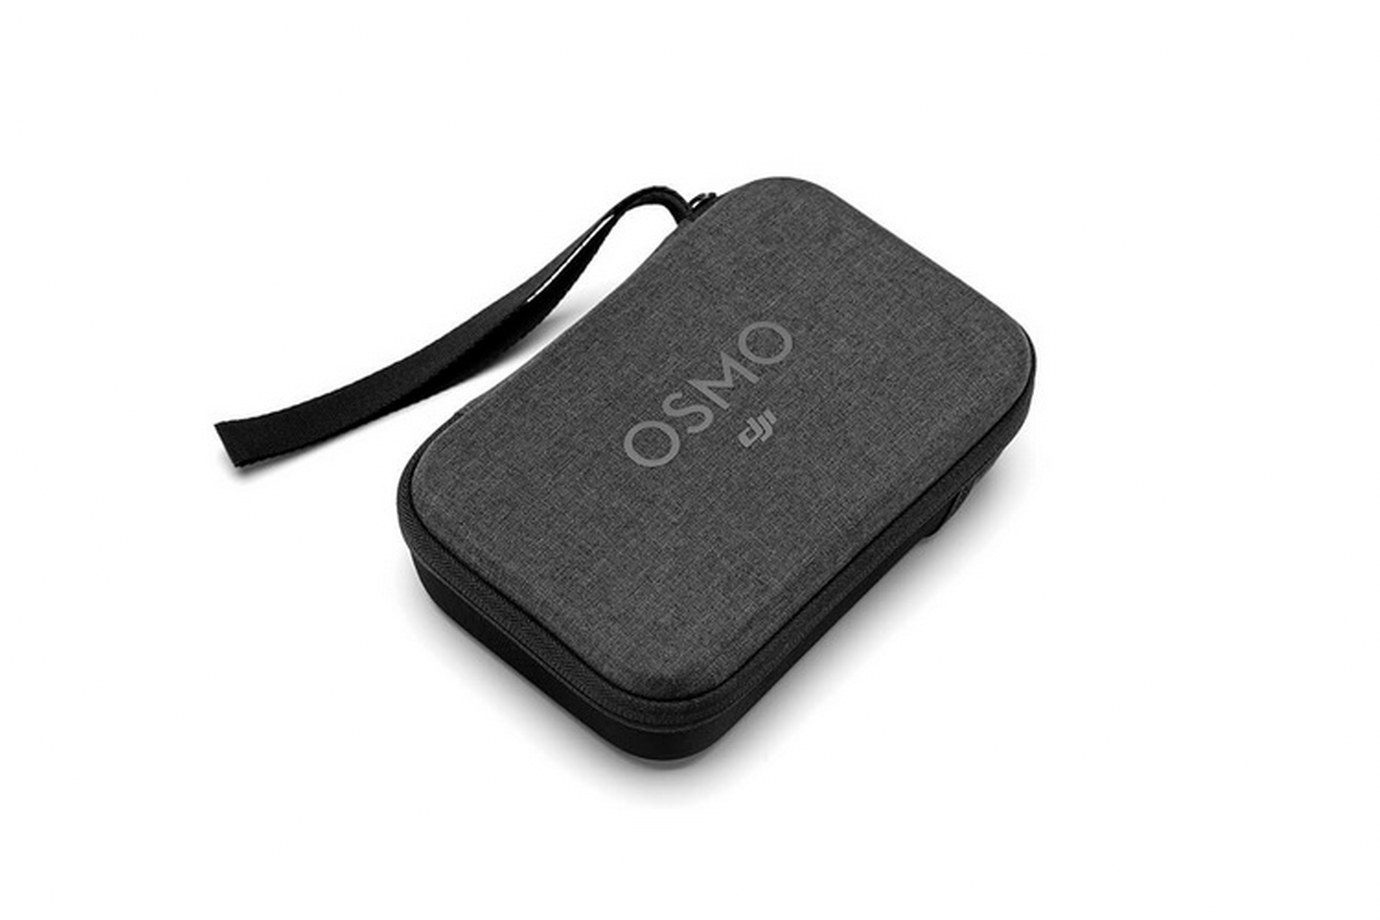 Osmo Mobile 3-Osmo Carrying Case